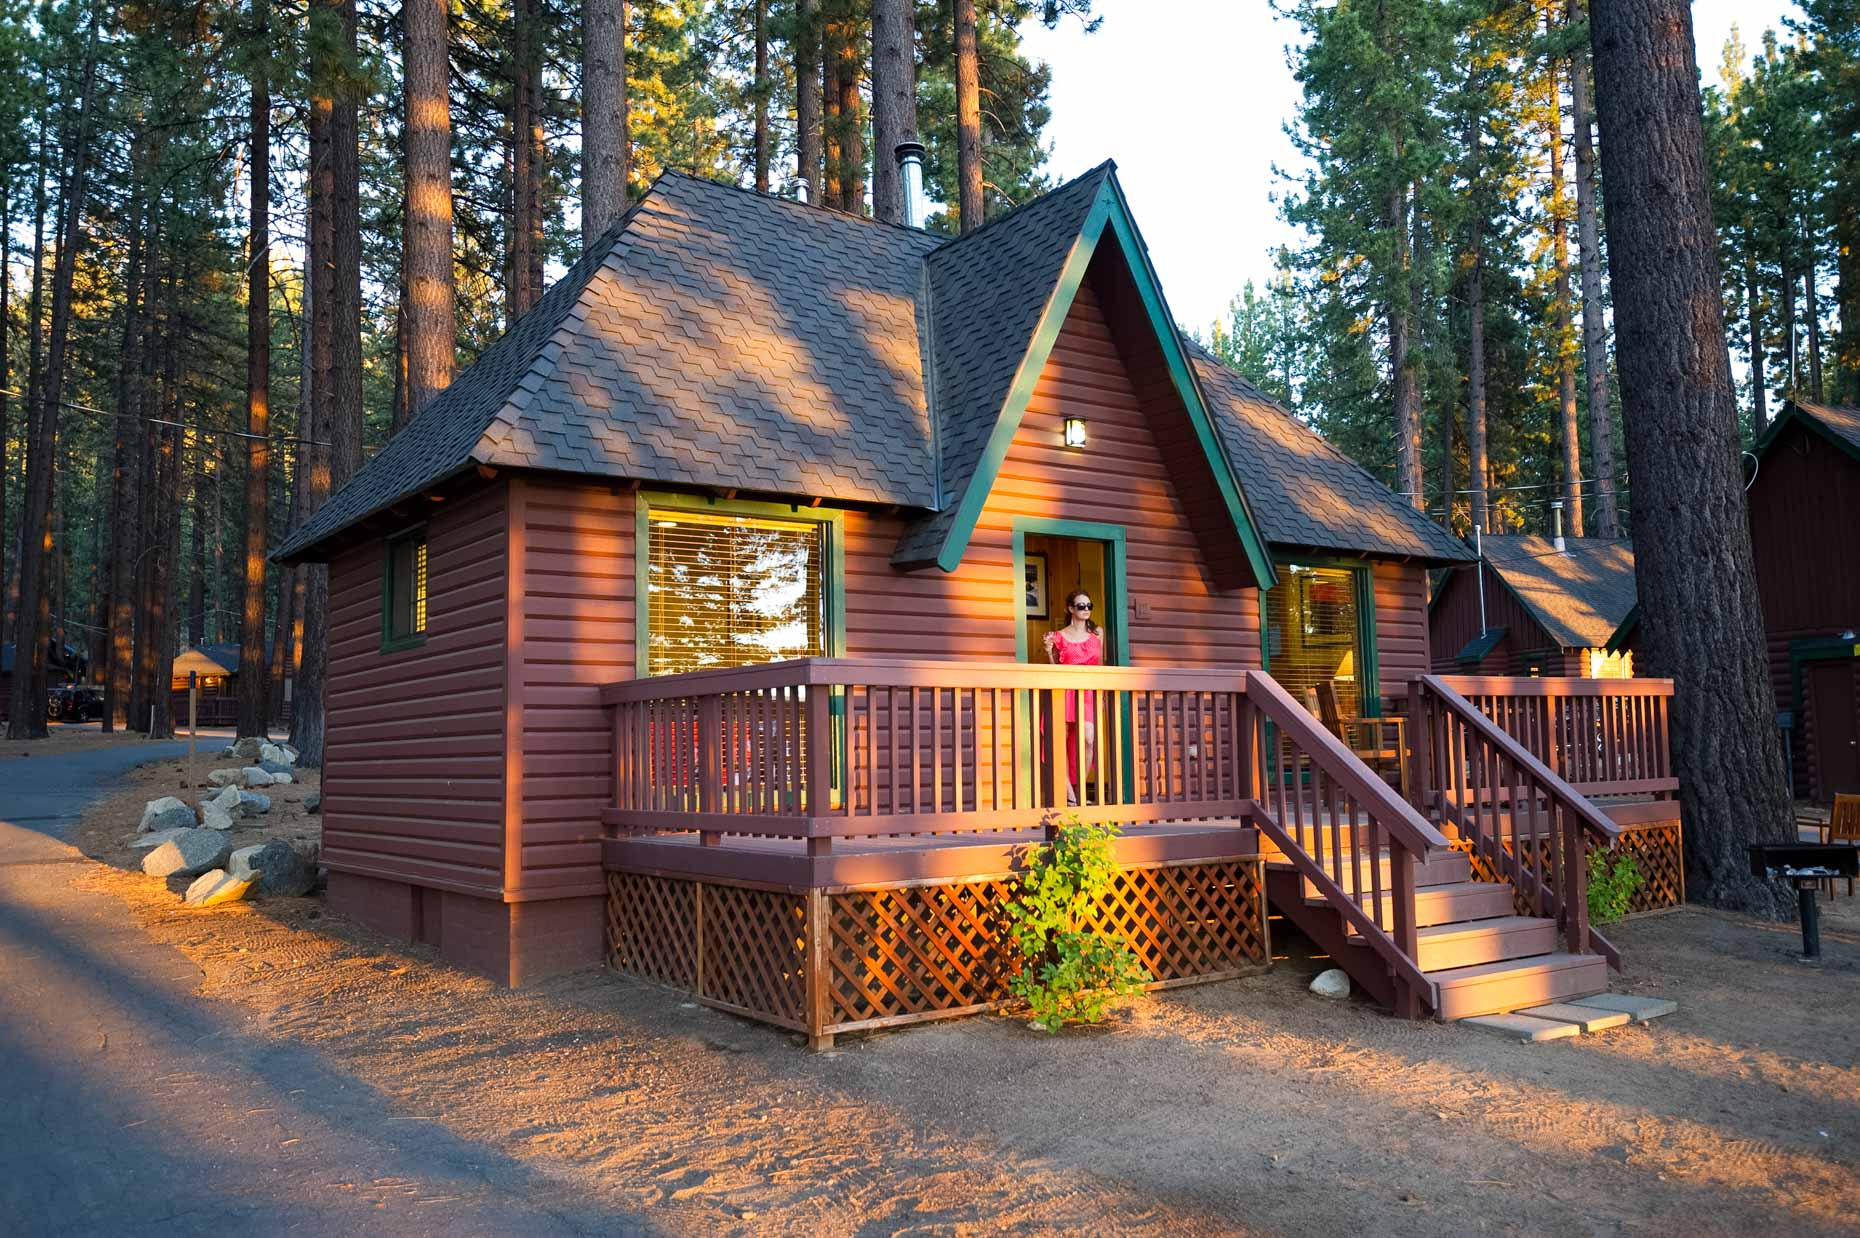 Cabin At Sunset - Zephyr Cove Resort, Lake Tahoe, Nevada